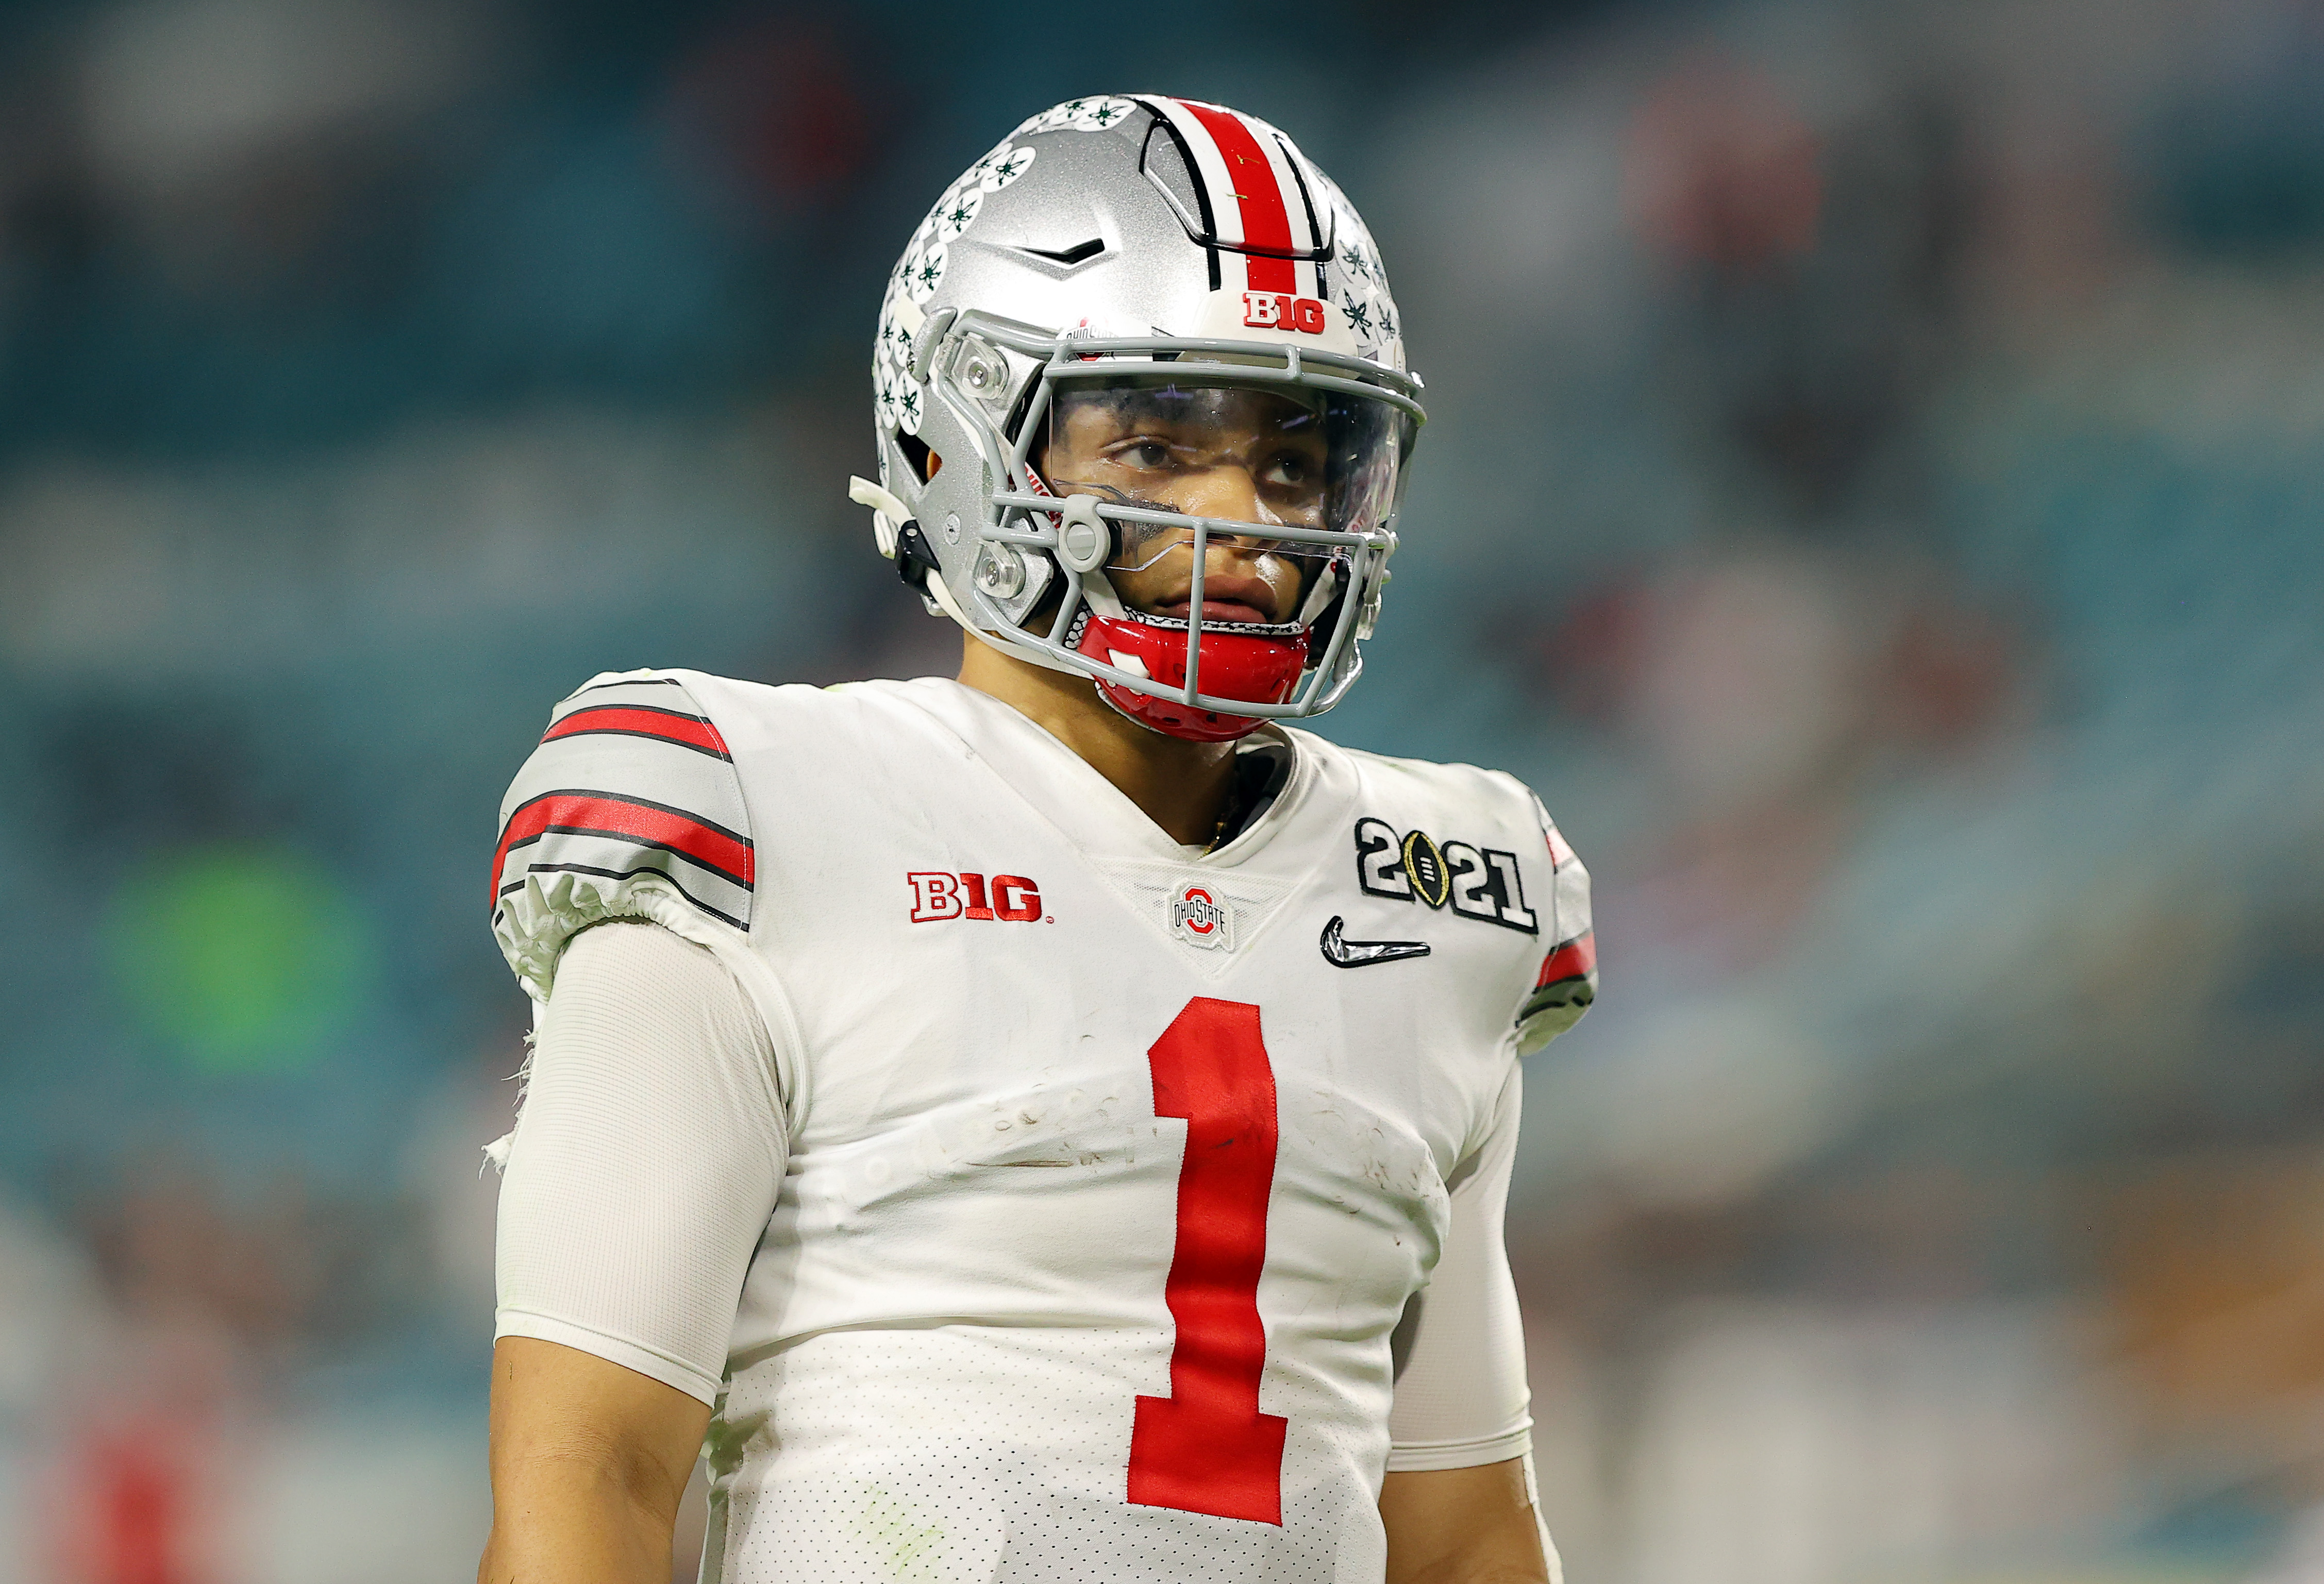 Justin Fields #1 of the Ohio State Buckeyes looks on during the fourth quarter of the College Football Playoff National Championship game against the Alabama Crimson Tide at Hard Rock Stadium on January 11, 2021 in Miami Gardens, Florida.